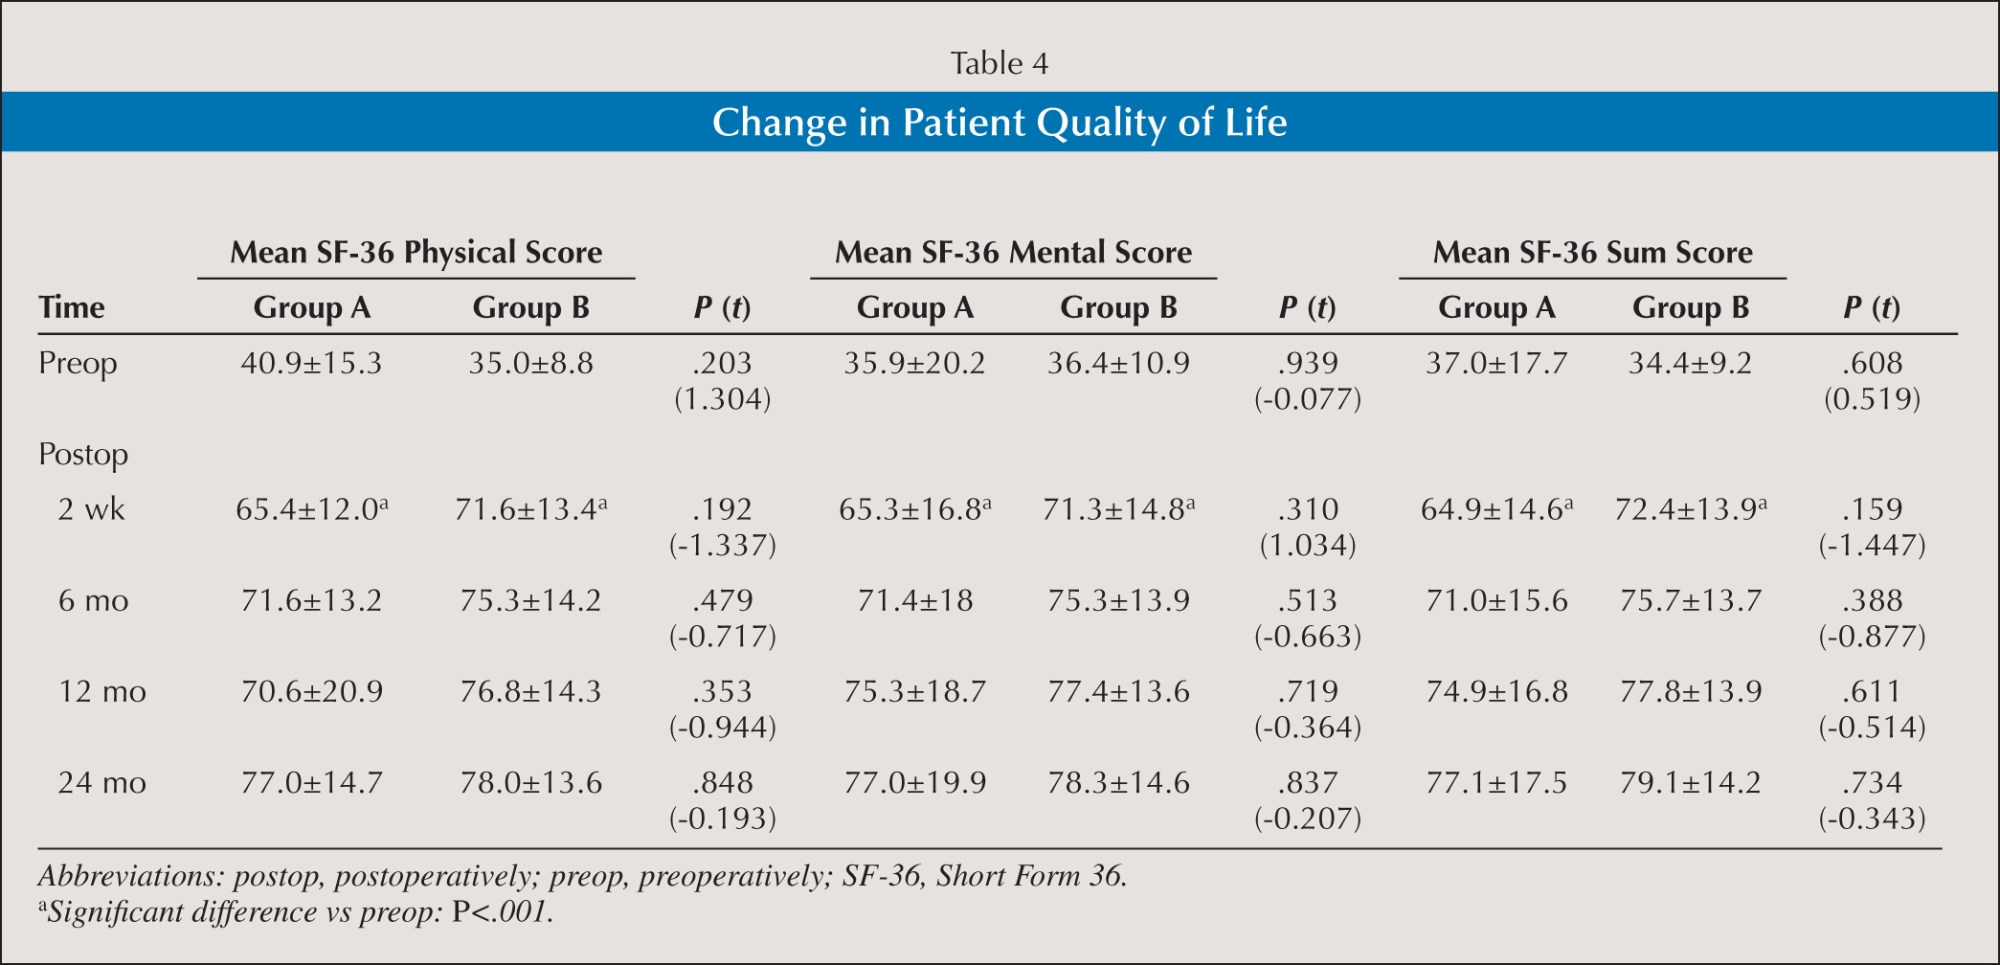 Change in Patient Quality of Life